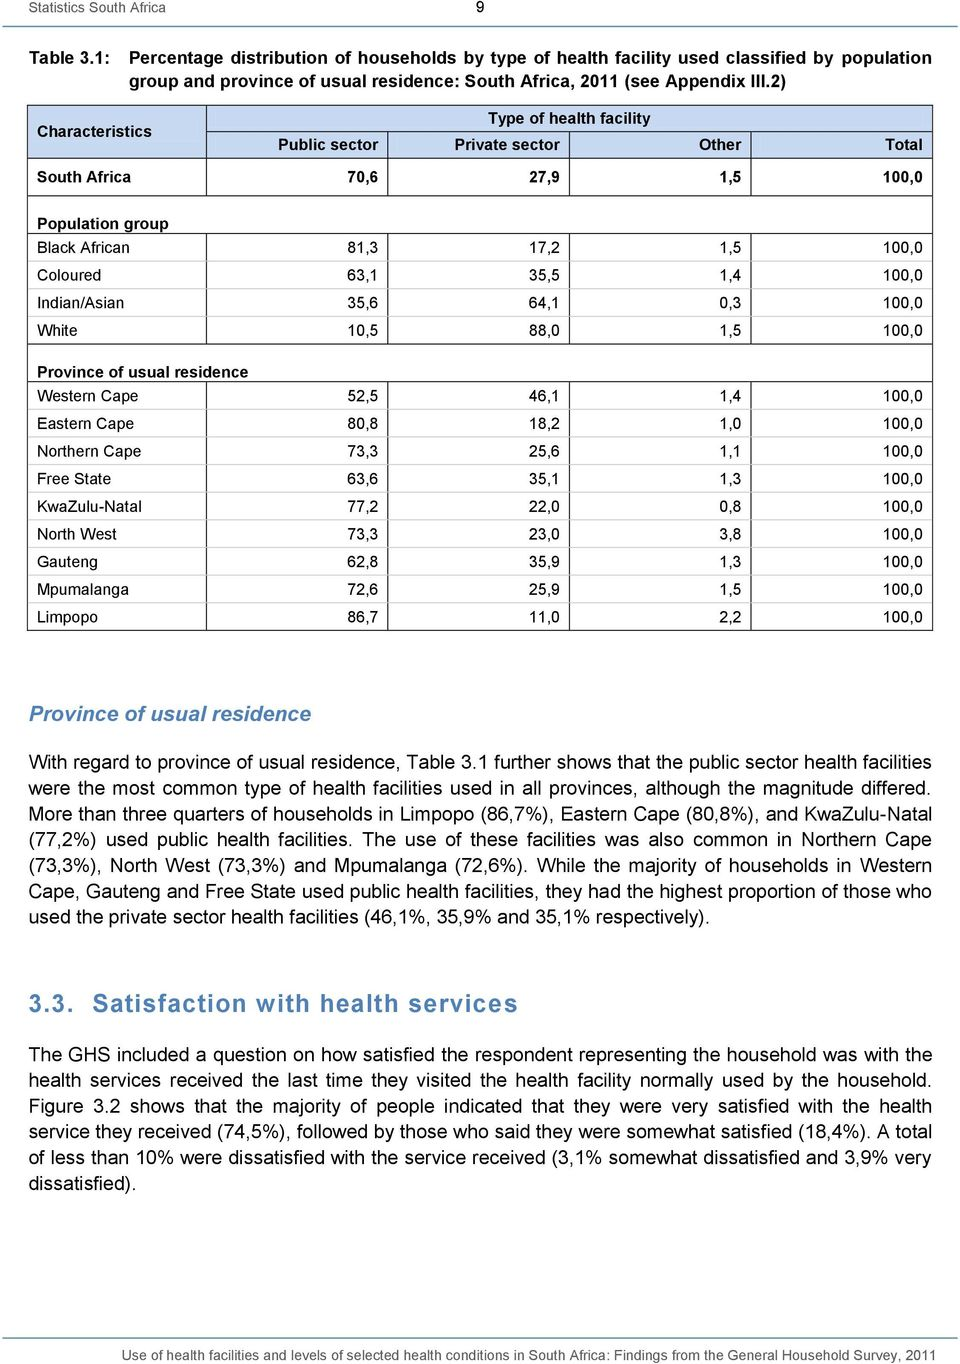 2) Characteristics Type of health facility Public sector Private sector Other Total South Africa 70,6 27,9 1,5 100,0 Black African 81,3 17,2 1,5 100,0 Coloured 63,1 35,5 1,4 100,0 Indian/Asian 35,6